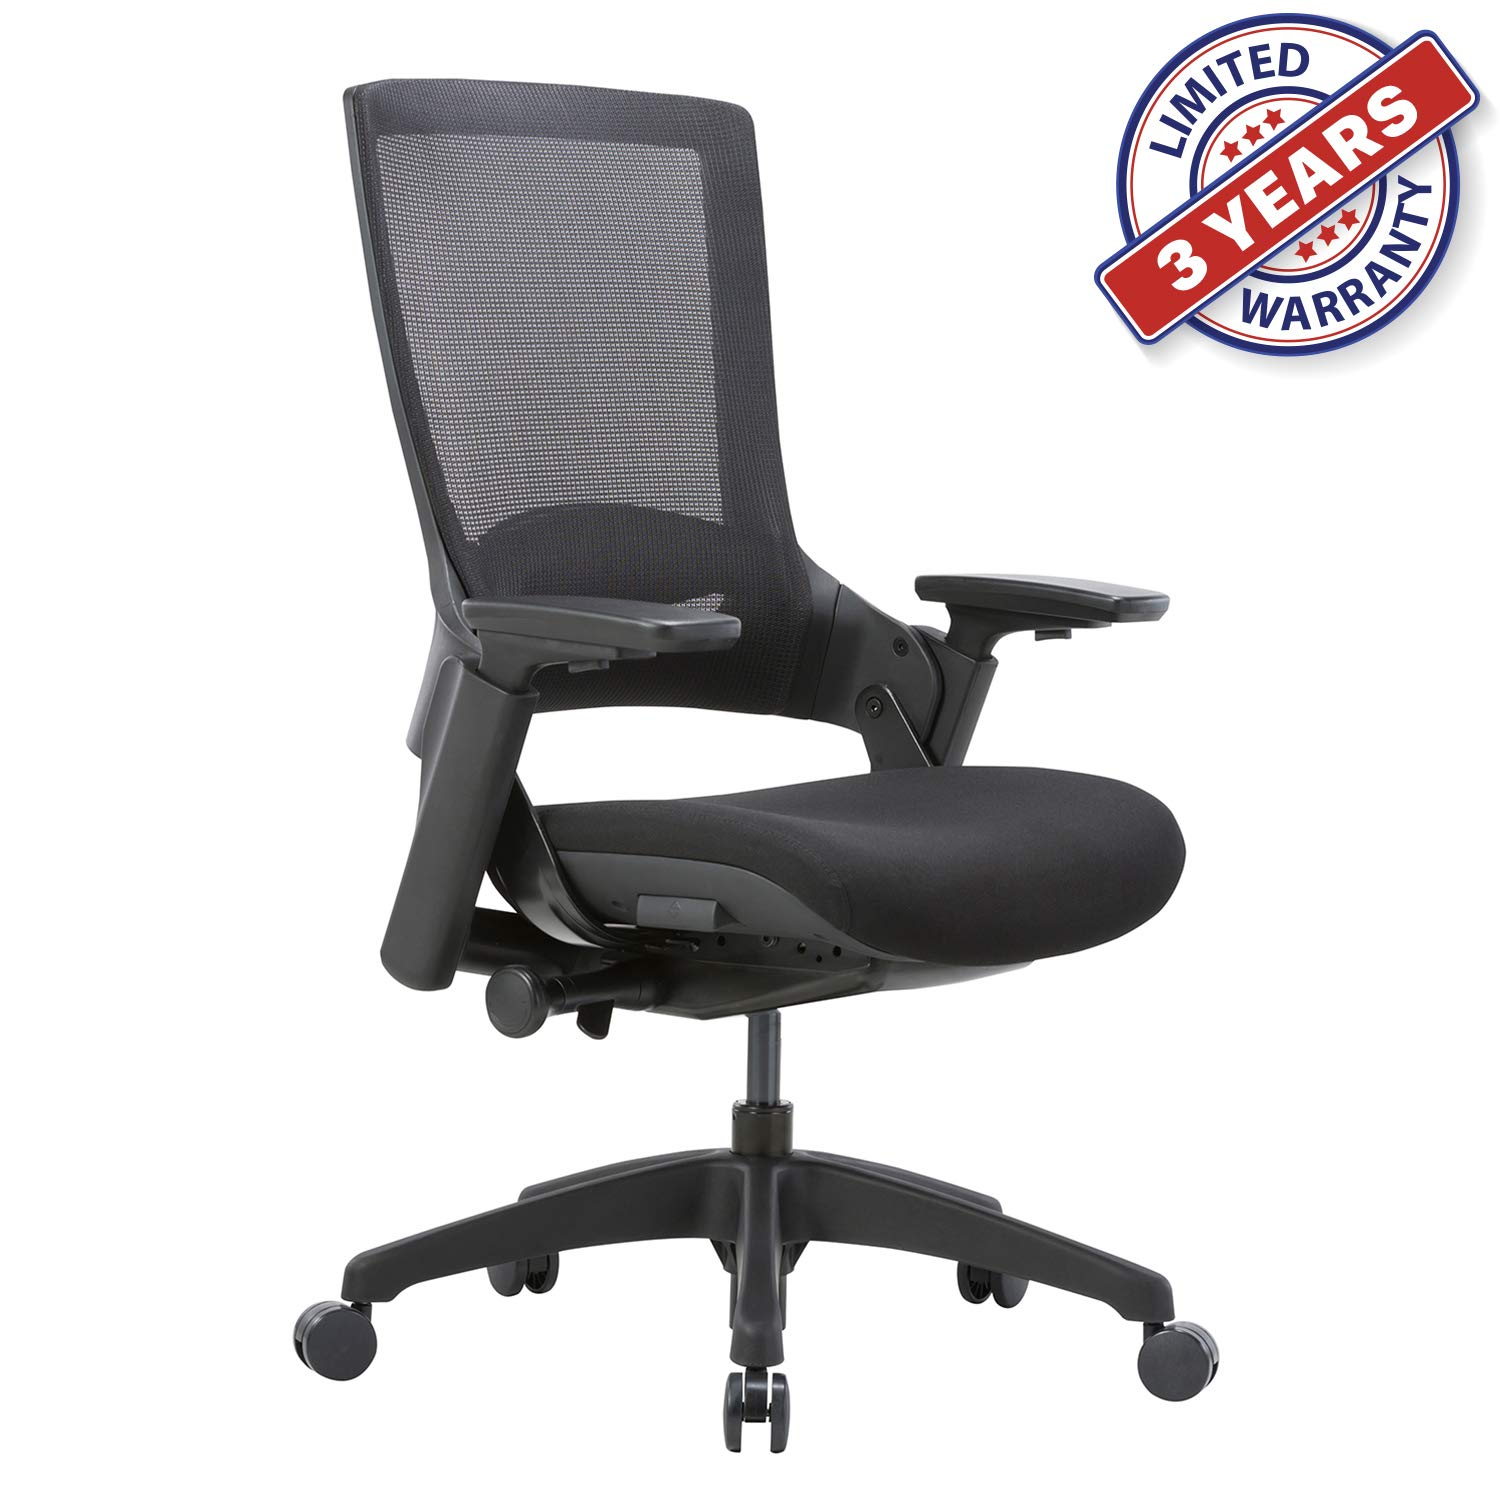 CLATINA Ergonomic High Swivel Executive Chair with Adjustable Height 3D Arm Rest Lumbar Support and Mesh Back for Home Office (Black)